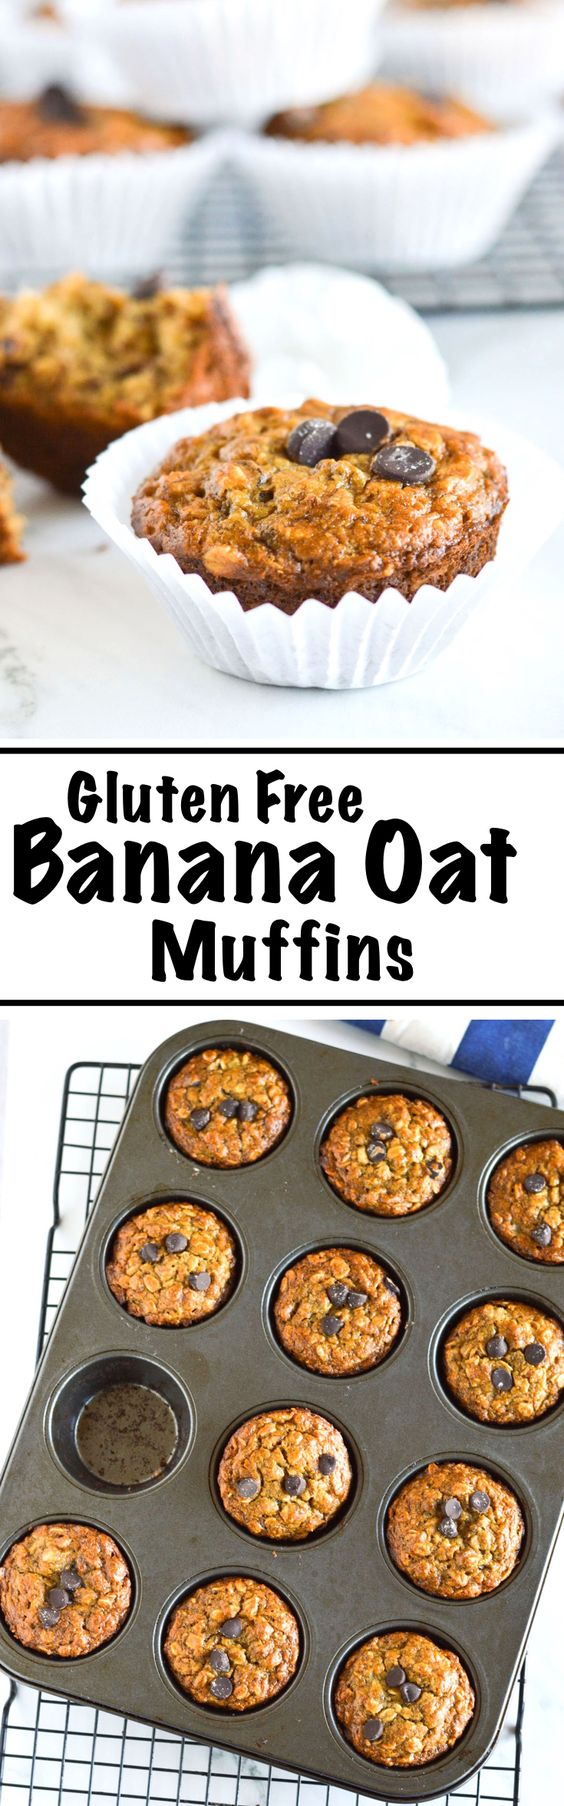 An easy to make recipe for my favourite breakfast on-the-go, Gluten Free Banana Oat Muffins! Made wholesome and healthy with gluten free rolled oats, banana, greek yogurt and chocolate chips.   nourishedtheblog.com   Gluten Free Banana Oat Muffins